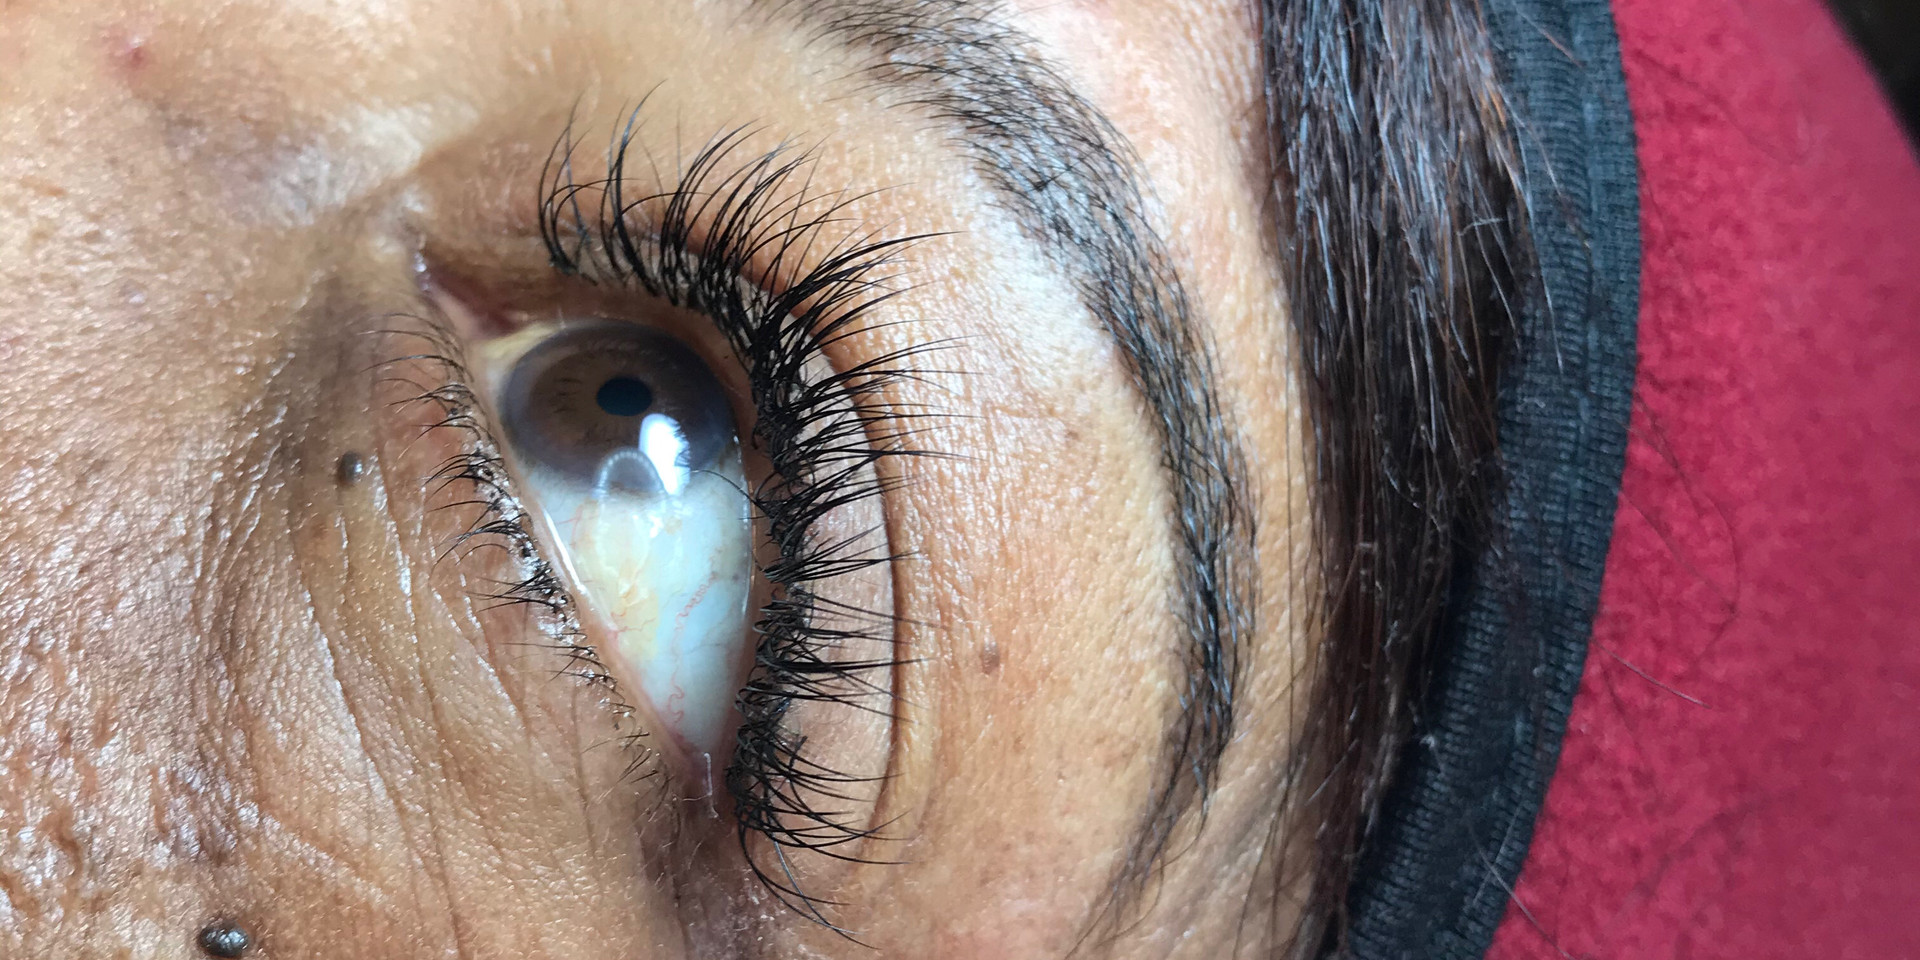 10-12MM LASHES  BROW SHAPING/TINTING